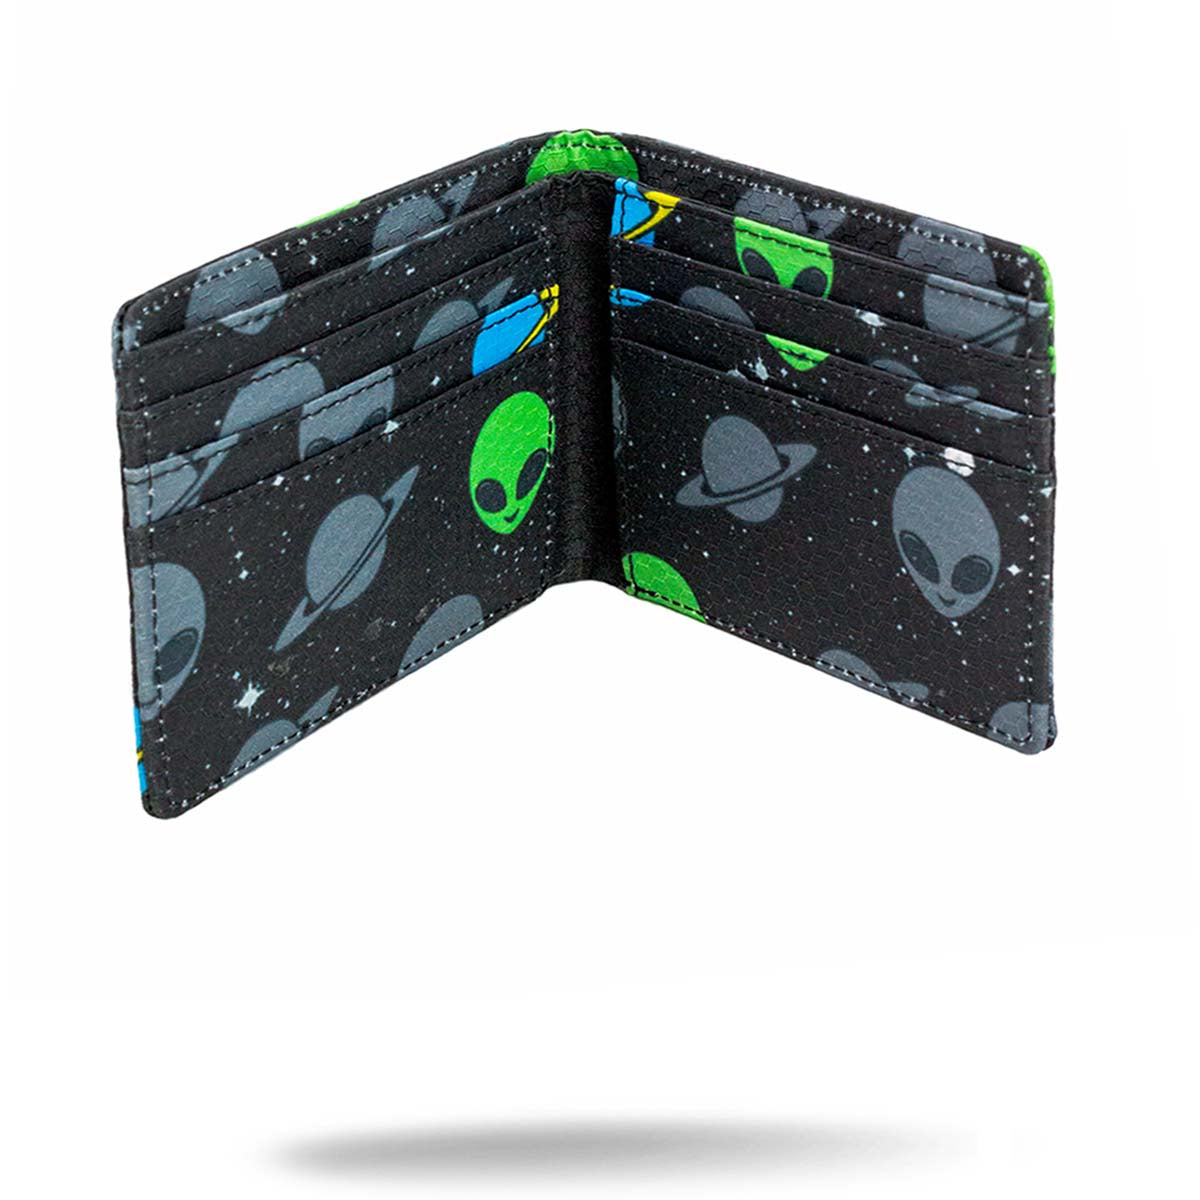 Inside view of black printed alien wallet